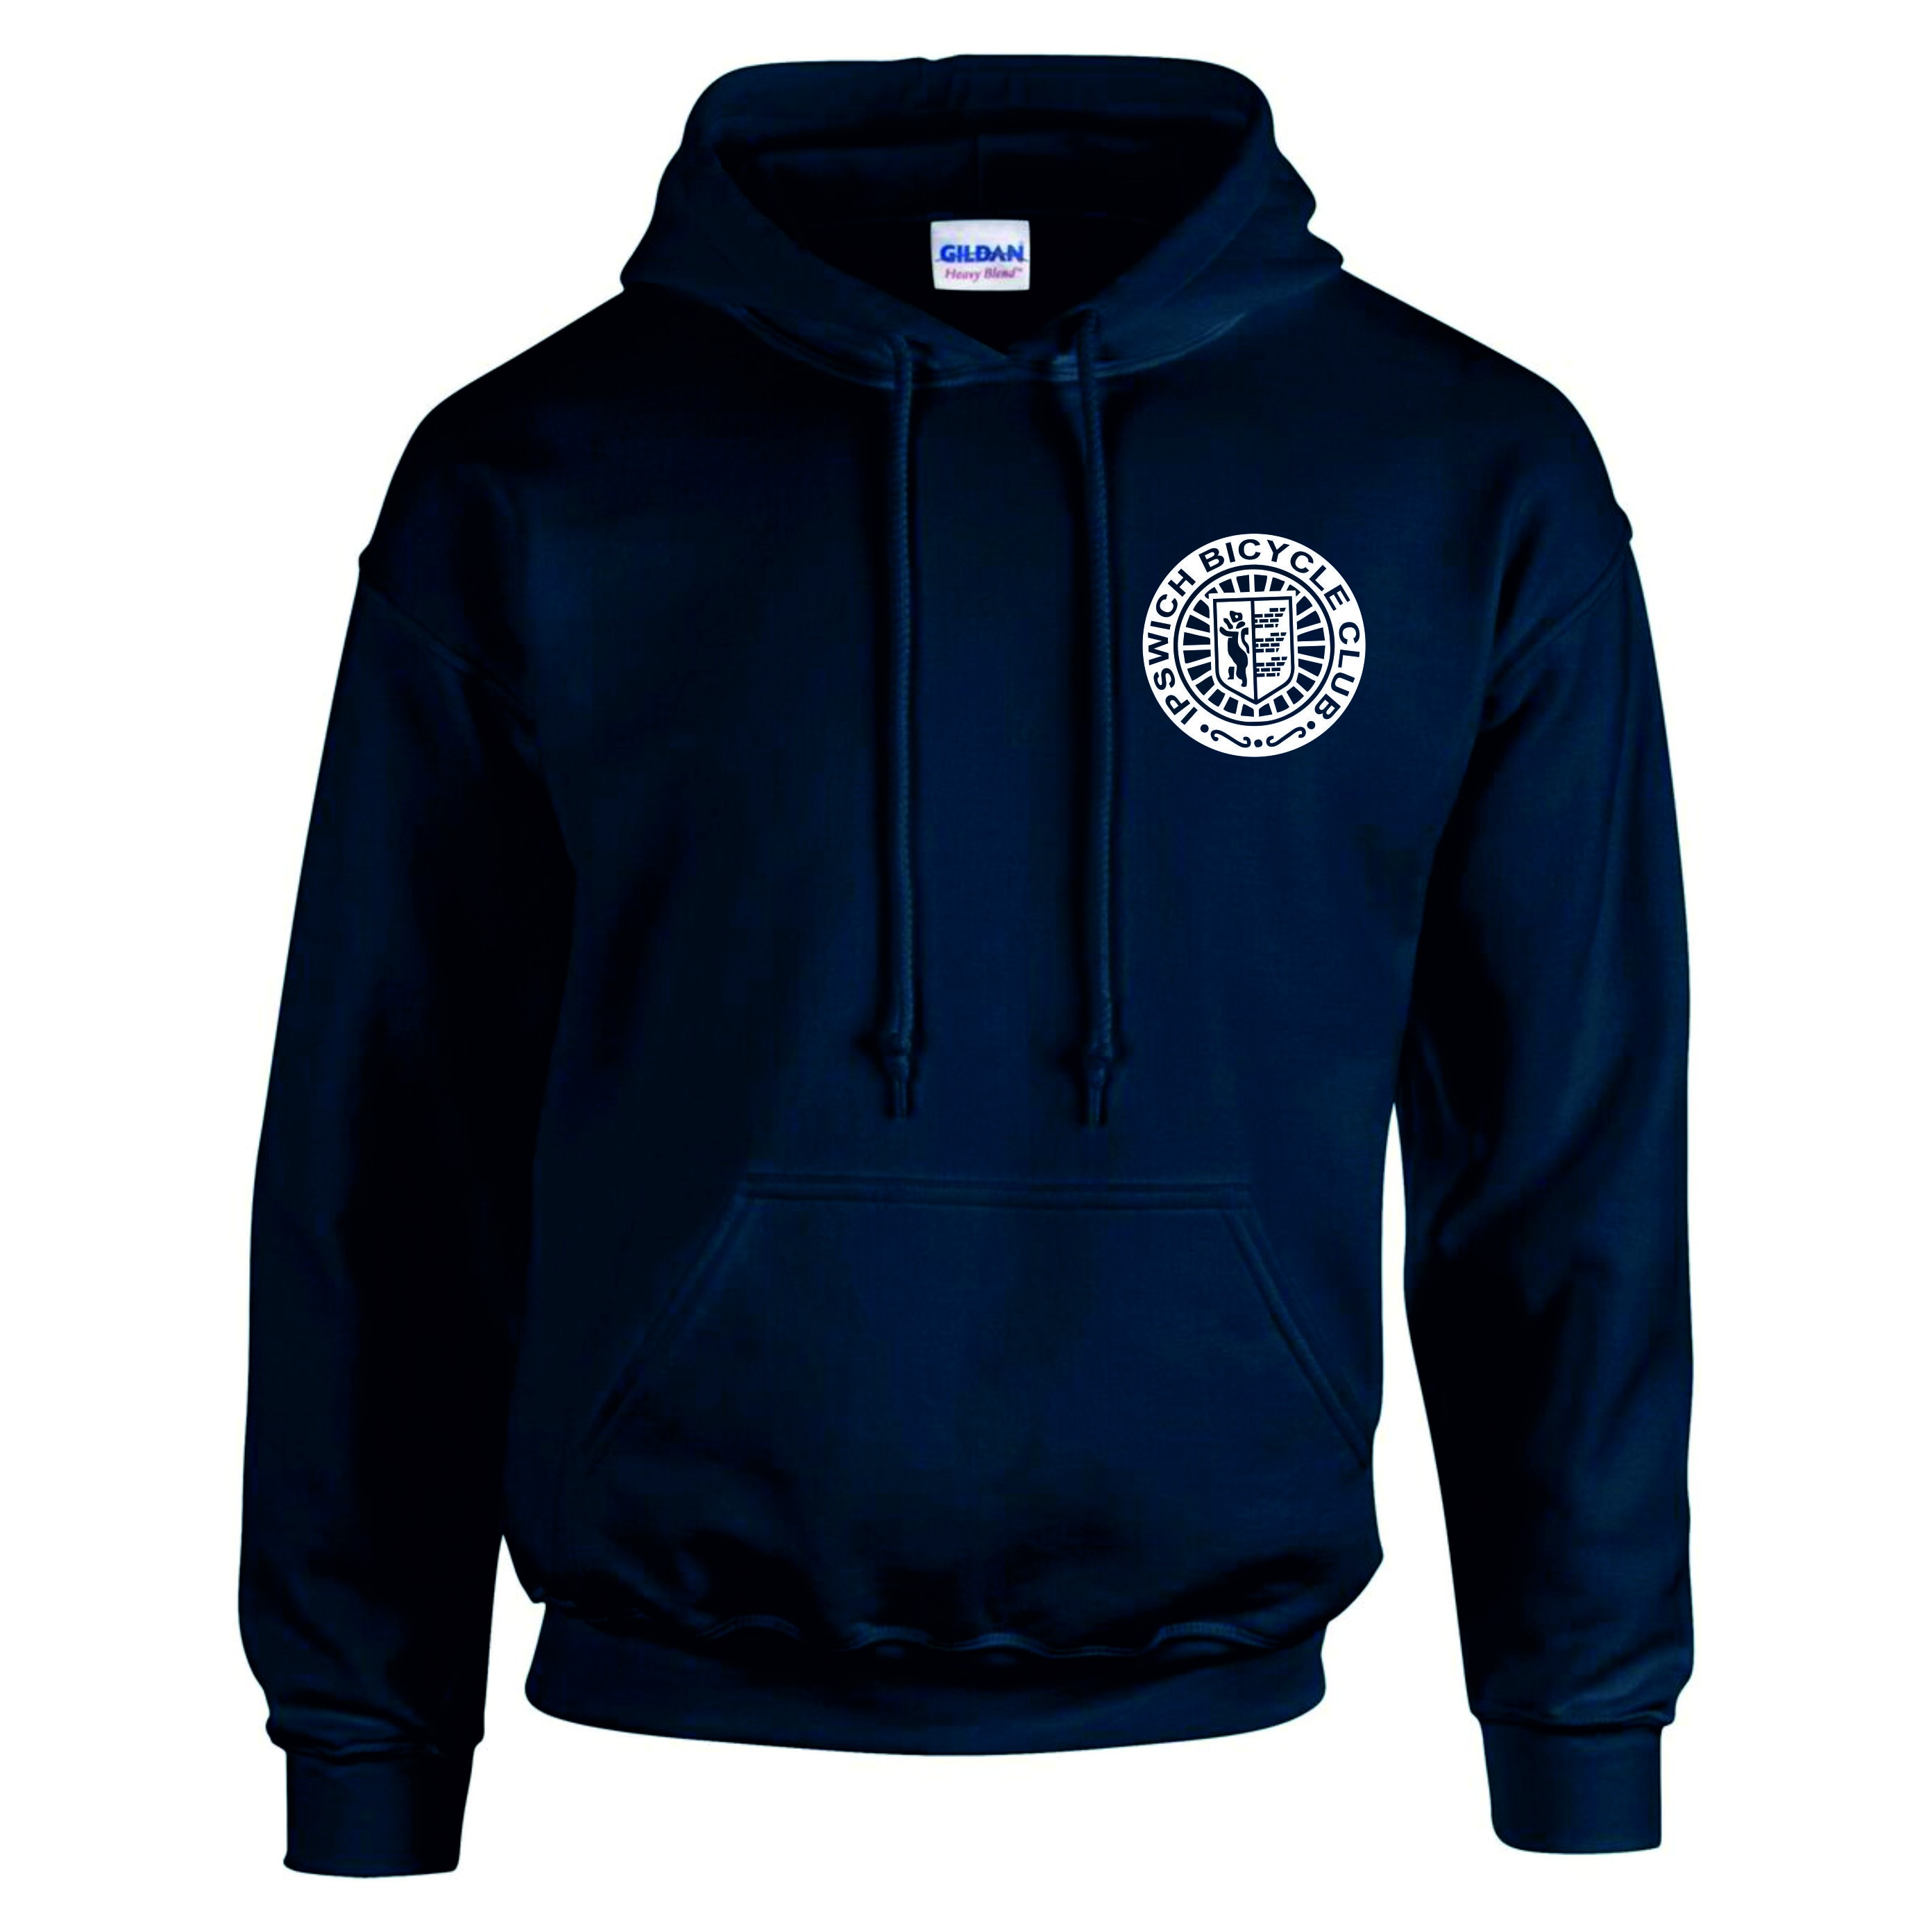 Ipswich Bicycle Club Unisex Adults Classic Hoodie